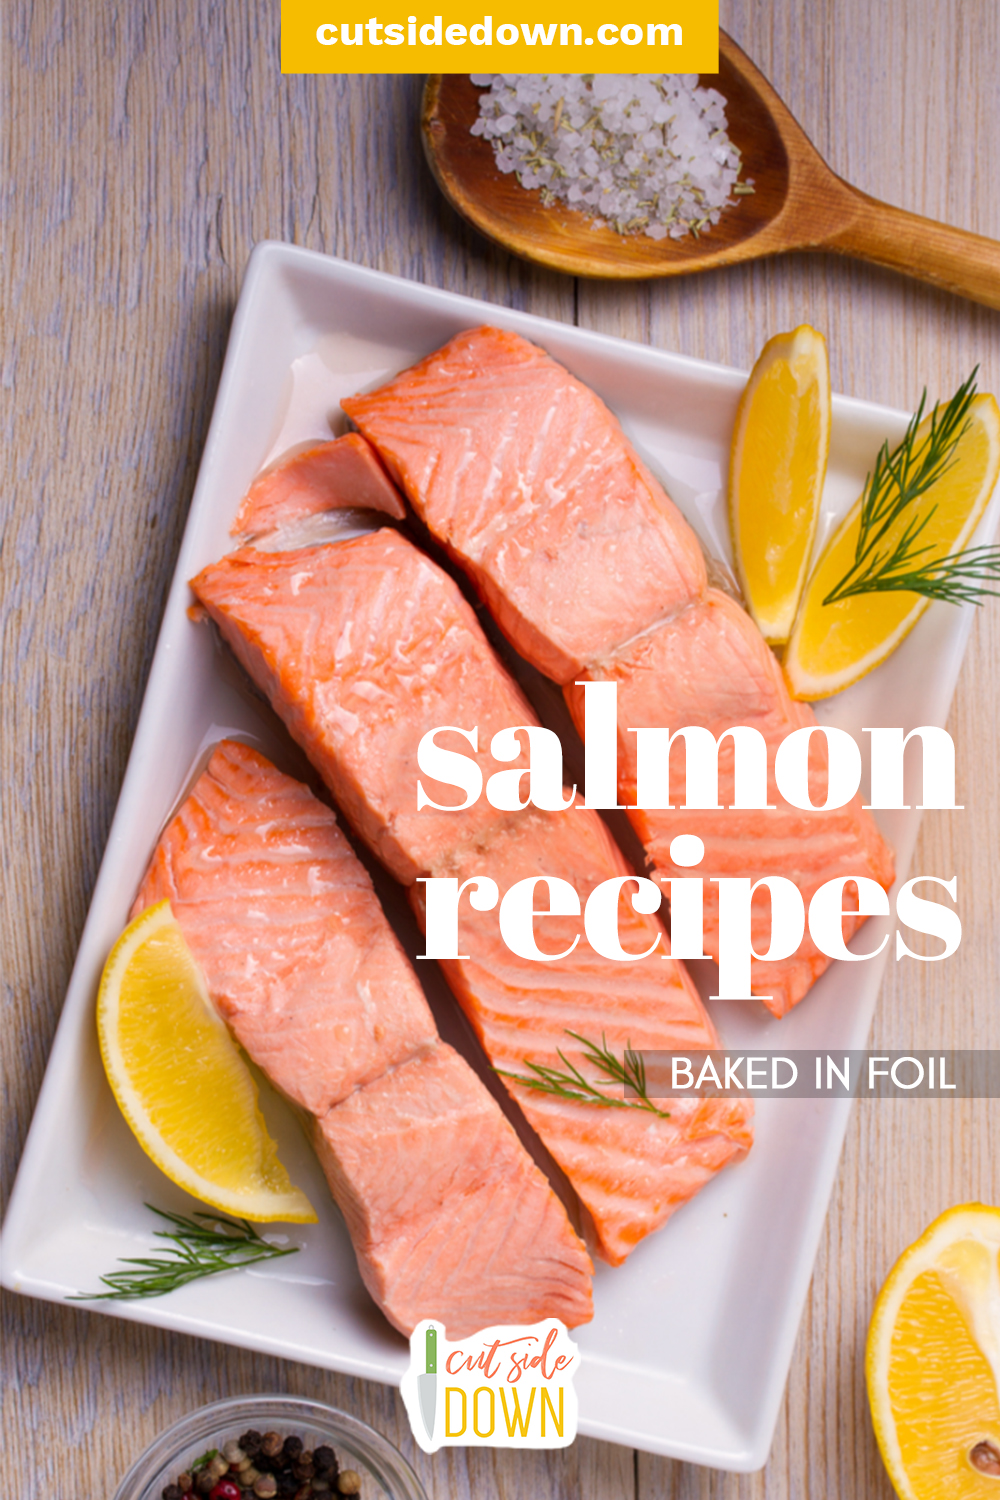 It's easy to dry out salmon when you're baking it. Baking it in foil helps to guarantee a fillet that is moist and flaky. Check out our favorite foil-baked salmon recipes! #TheCutSideDownBlog #SalmonRecipes #BakedinFoilSalmonRecipes #FoilPacketSalmonRecipes